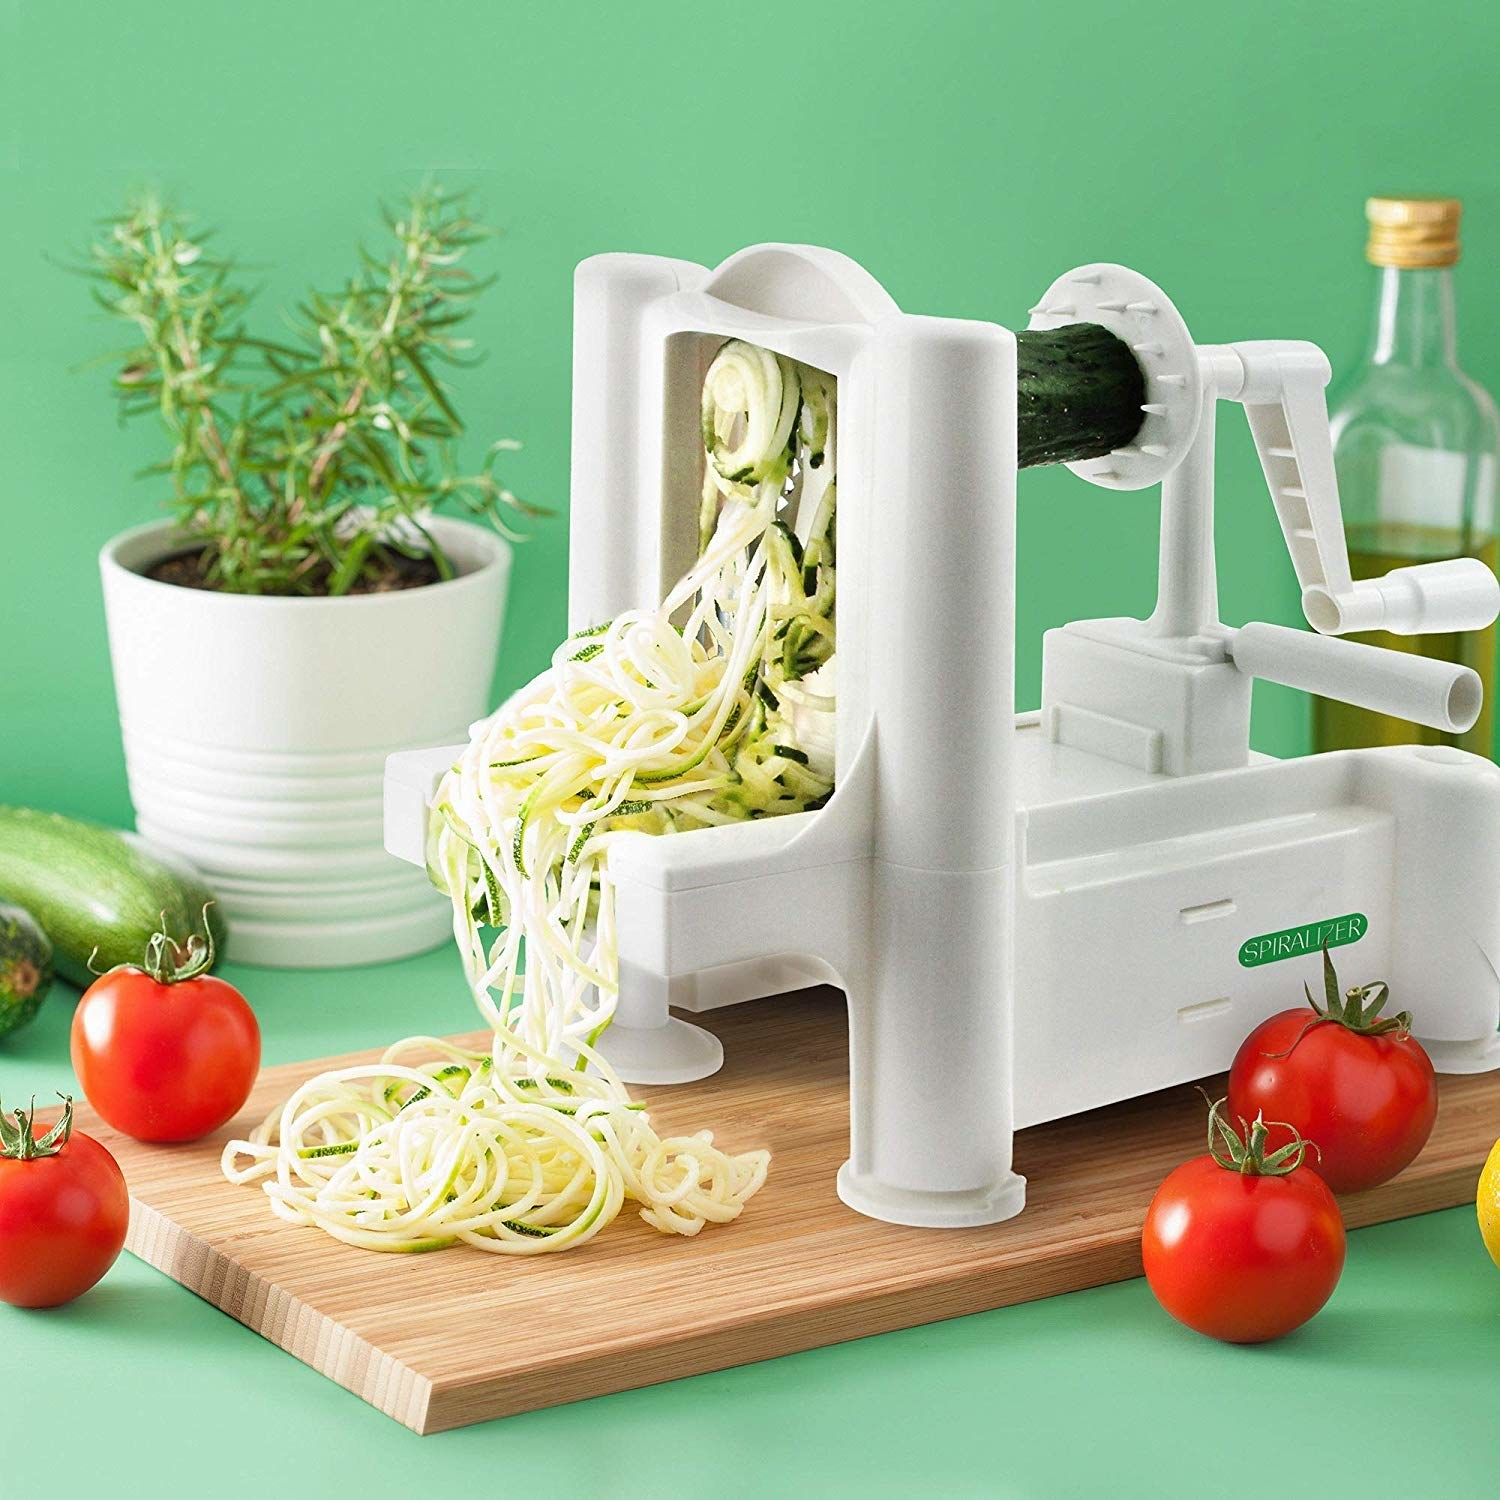 spiralizer spits out zucchini noodles with hand crank